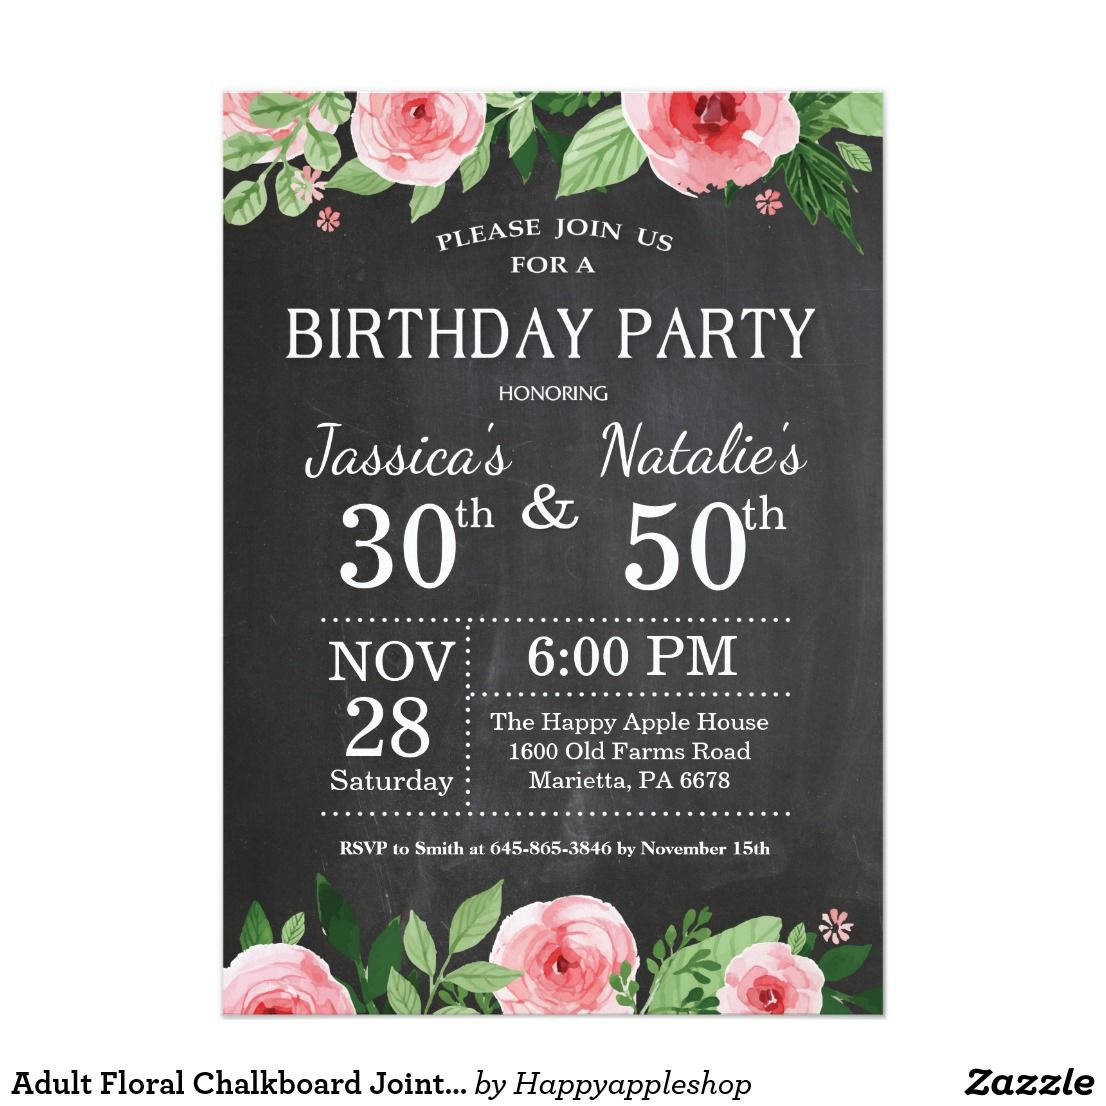 Adult Floral Chalkboard Joint Birthday Party Invitation Combined Co